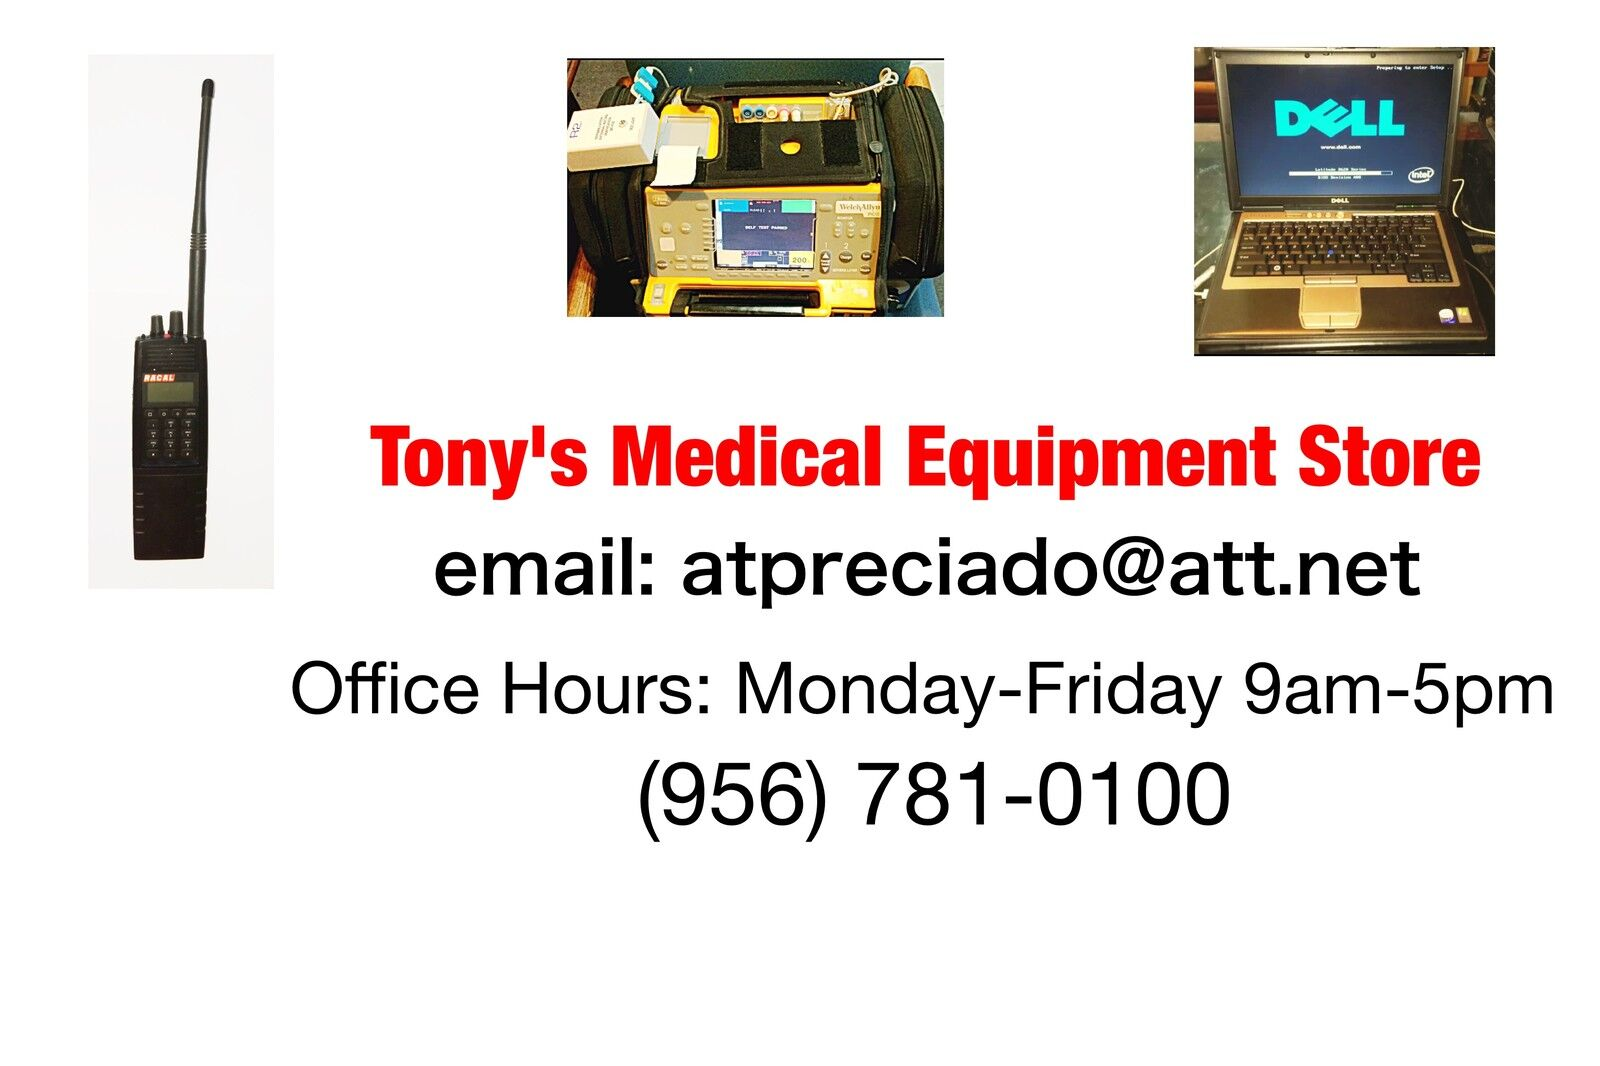 TONY'S  MEDICAL EQUIPMENT STORE